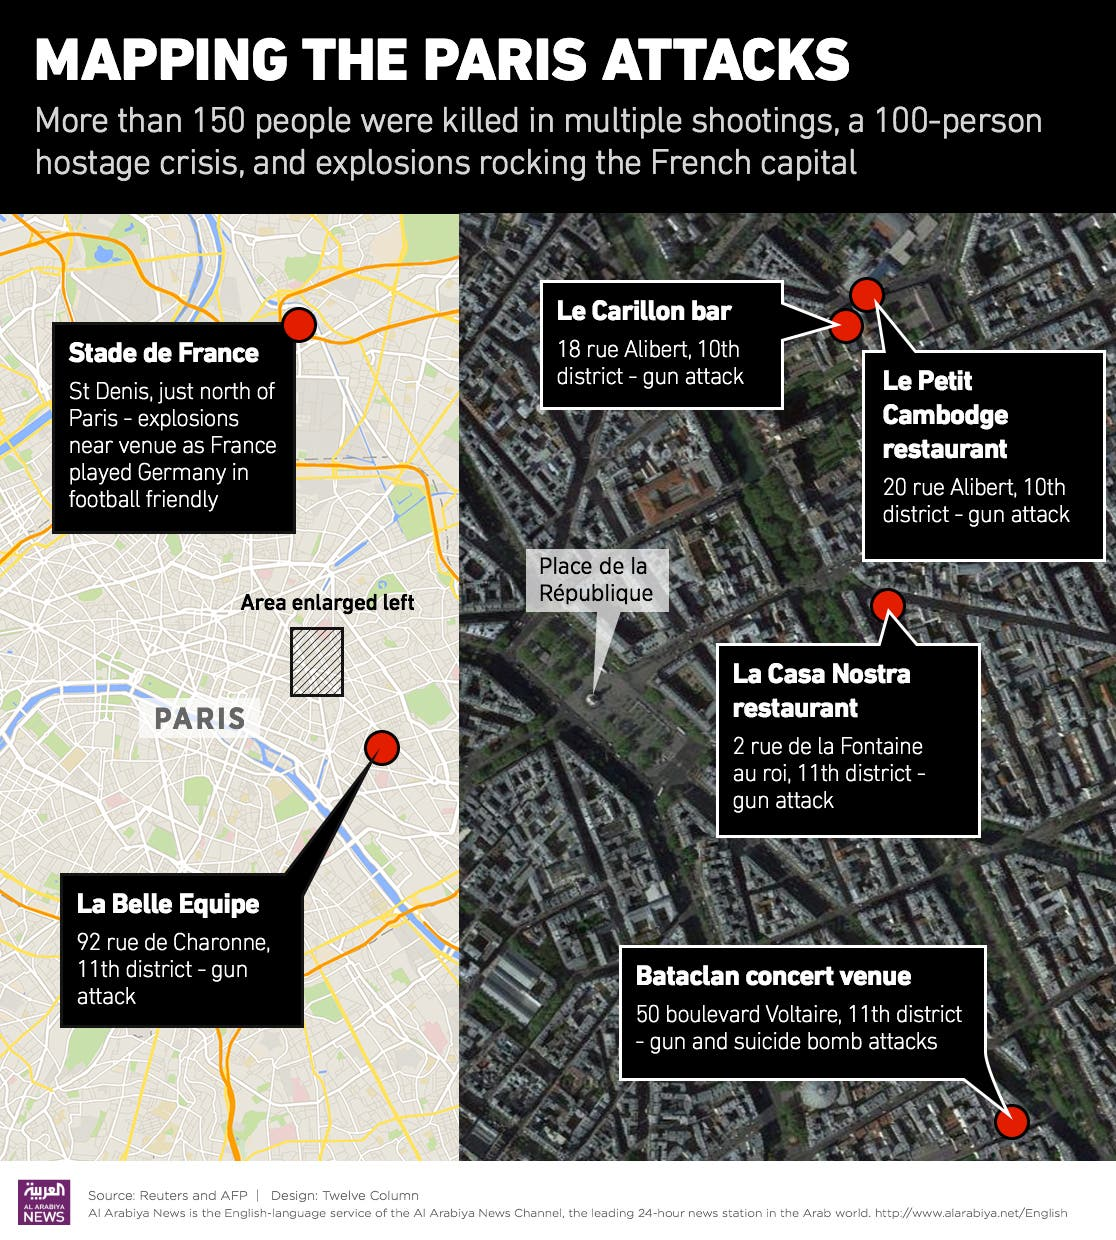 Bataclan Concert Hall Paris Map.Death Toll Surges To 129 In Paris Gunfire And Blasts Al Arabiya